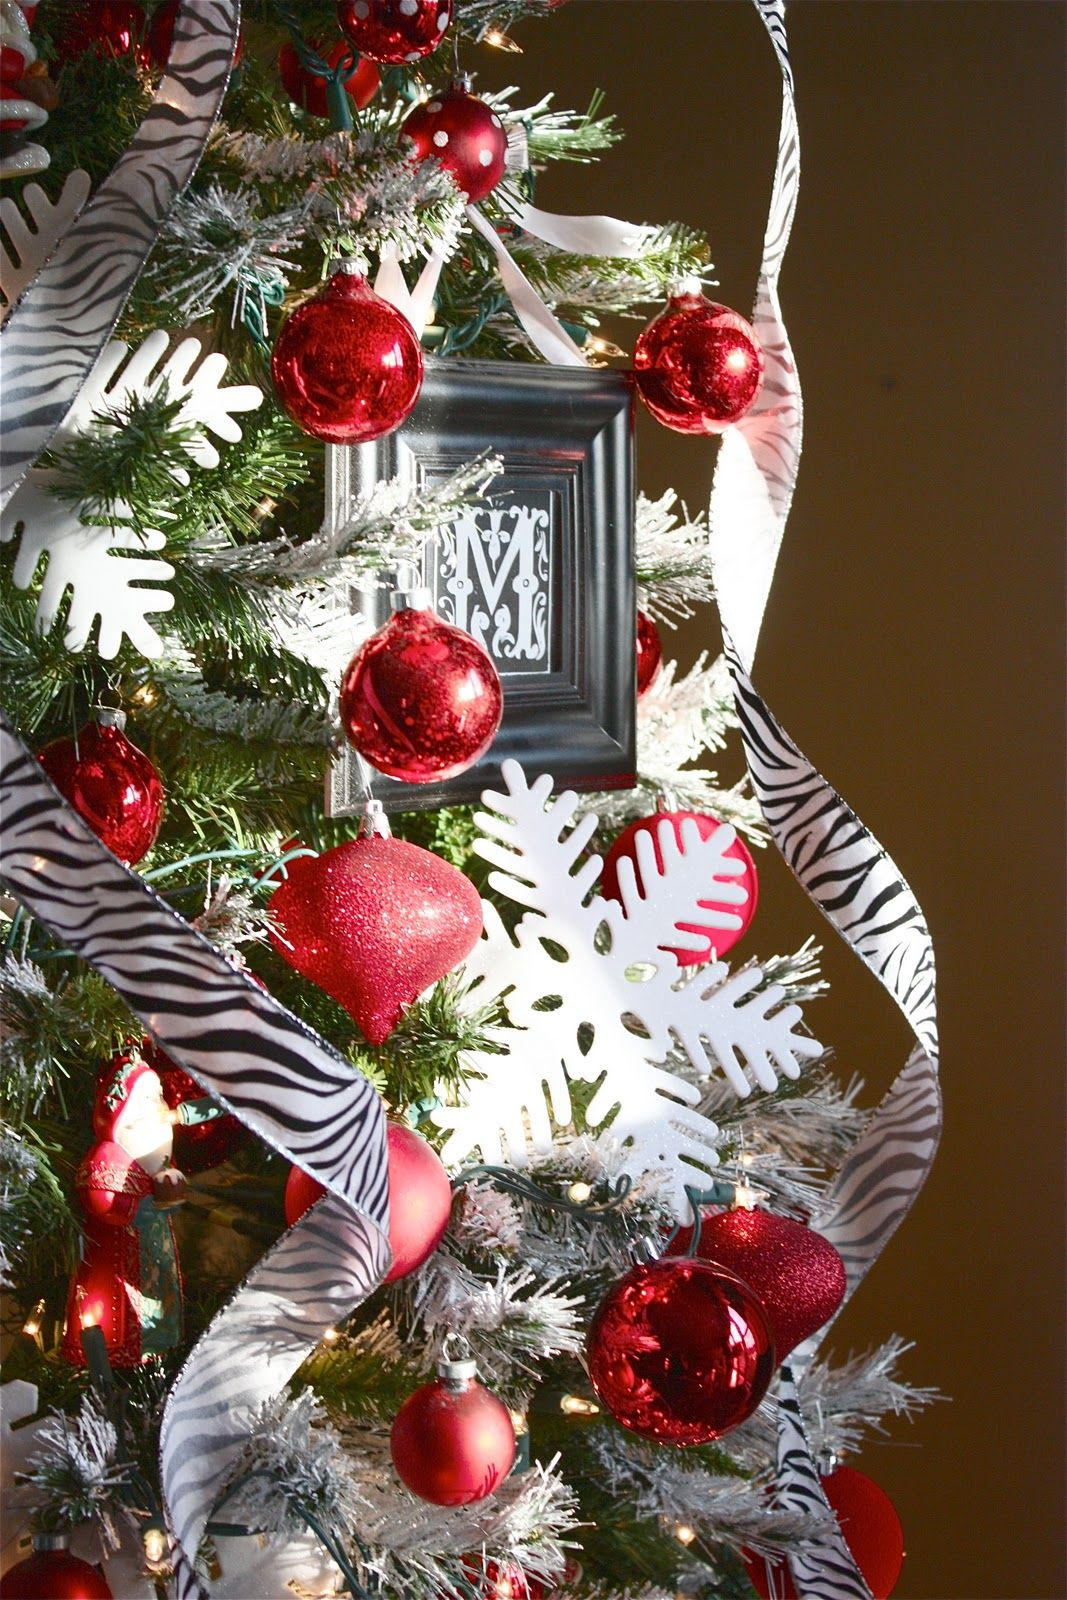 Decorate Your Tree Like a Pro. I'll have to remember these come December!